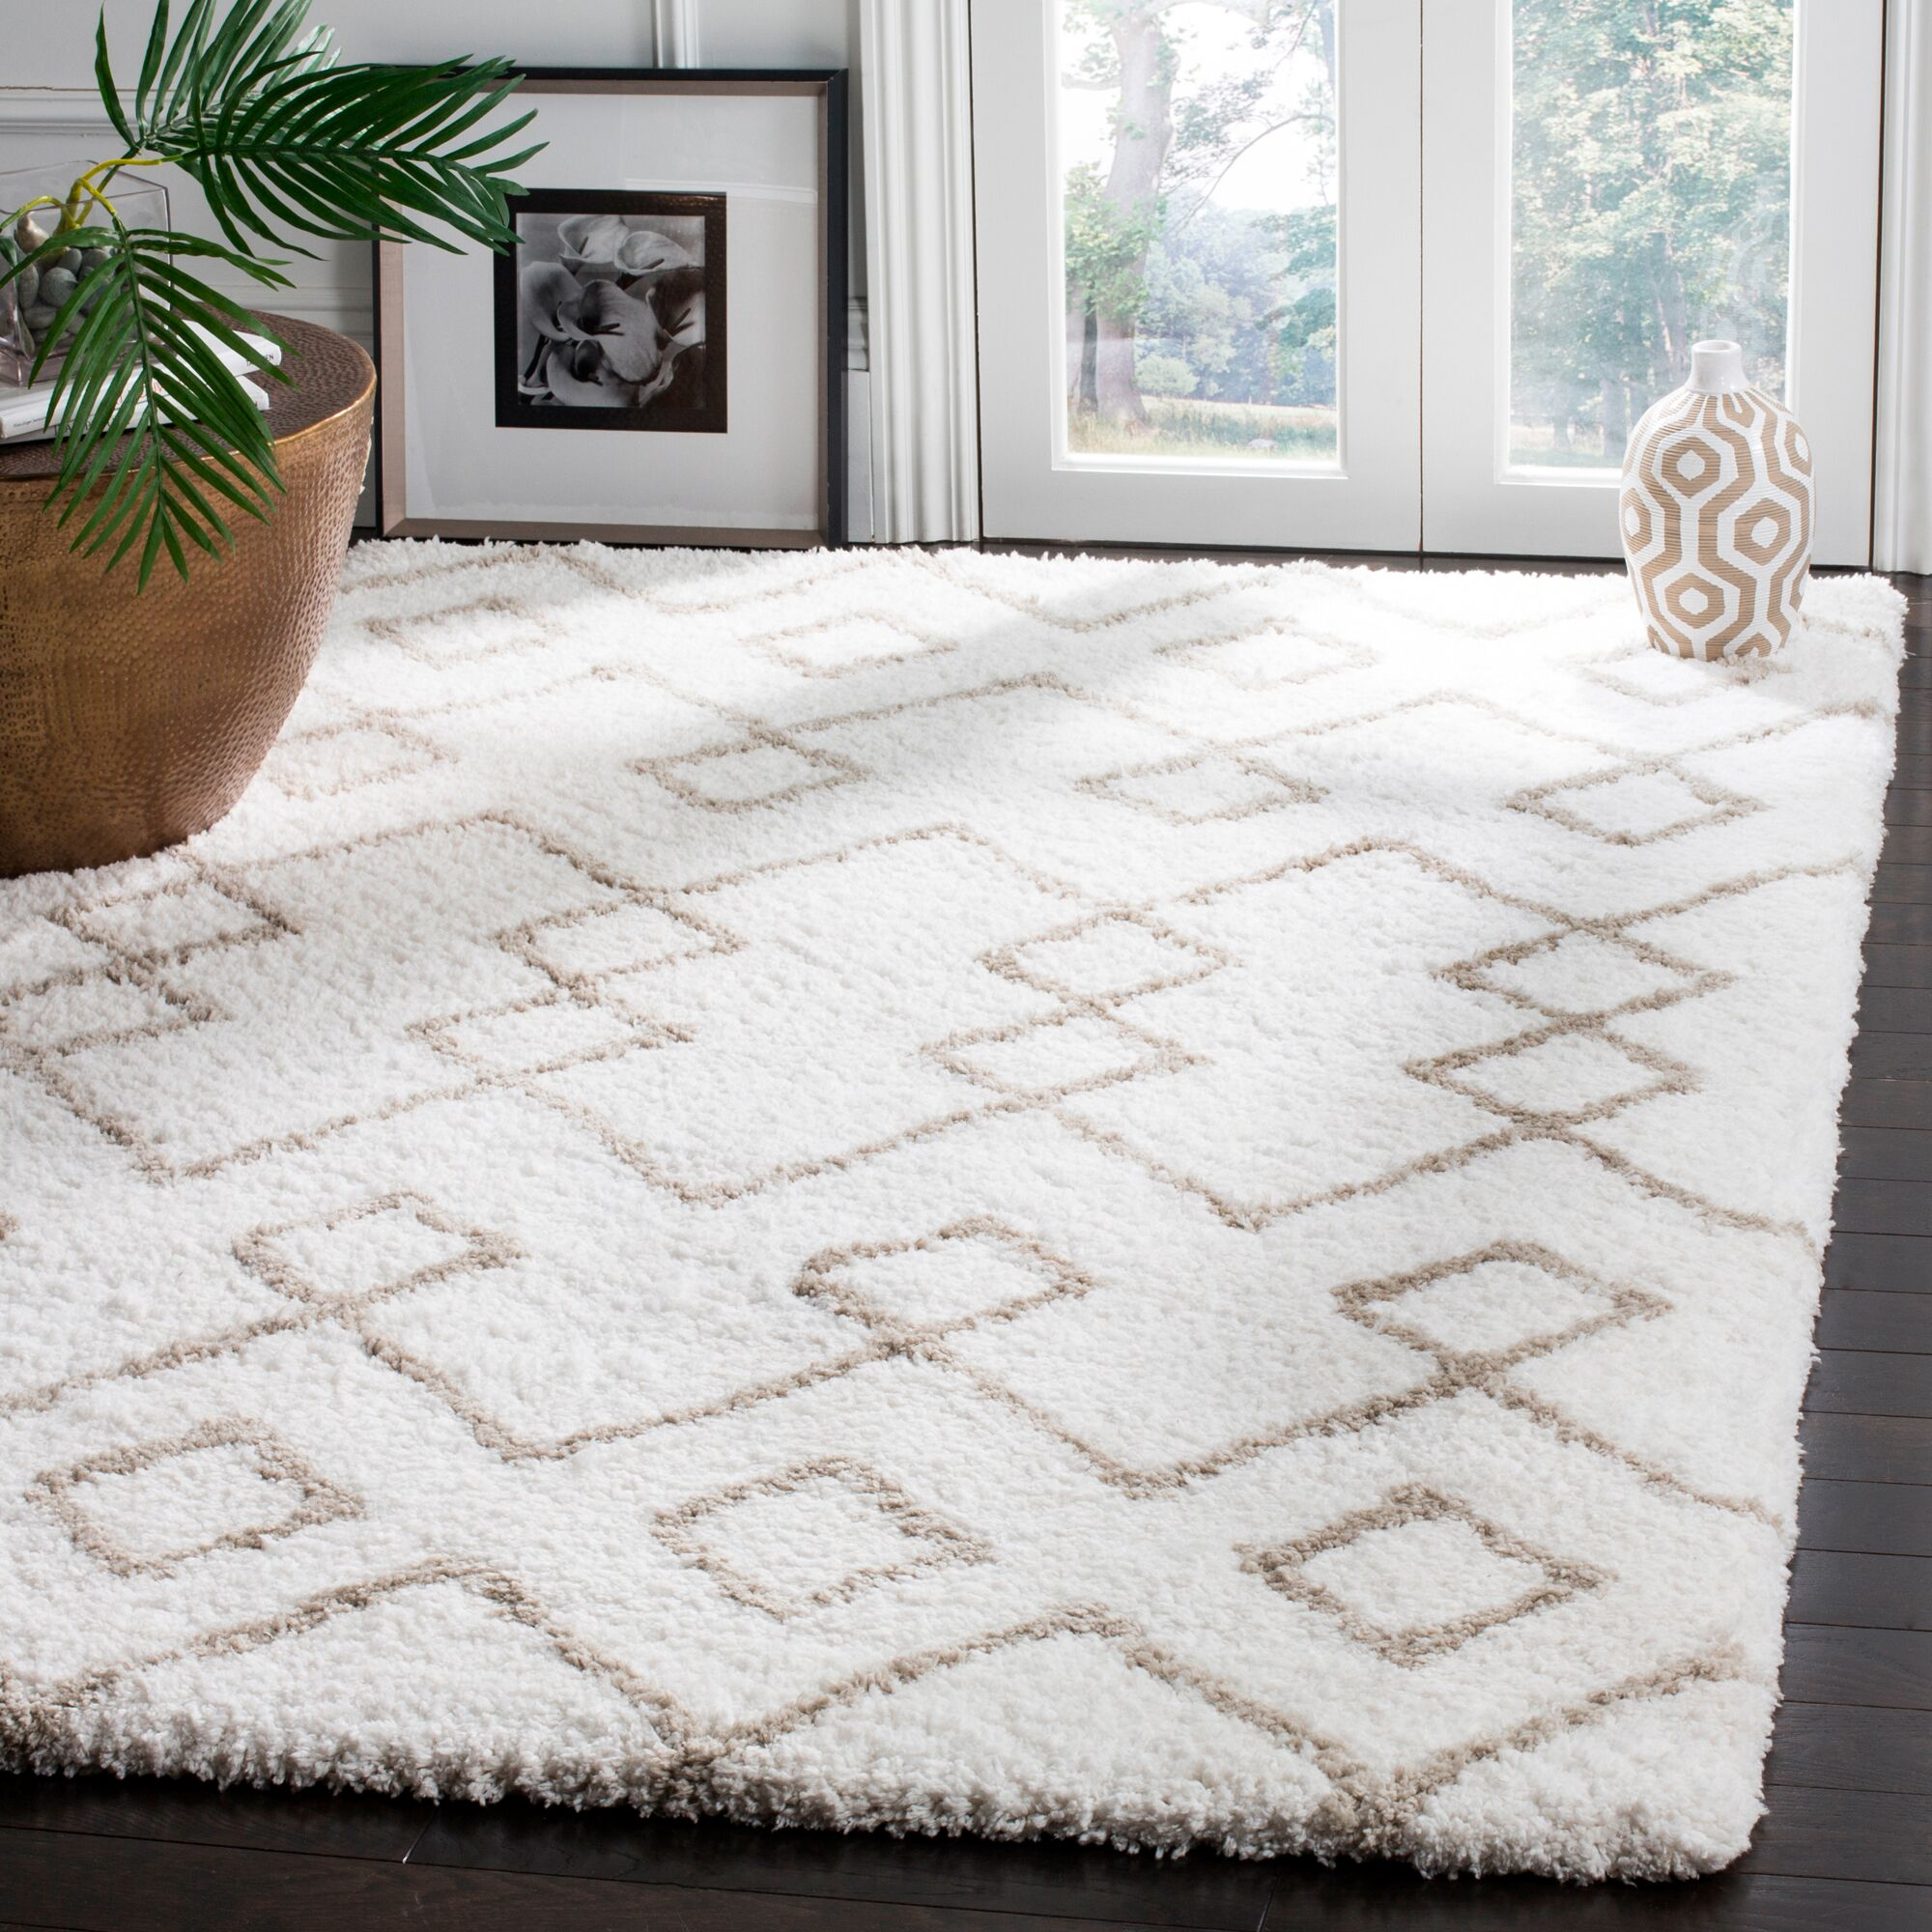 Livingstone Hand-Tufted Ivory/Silver Area Rug Rug Size: Rectangle 6' x 9'